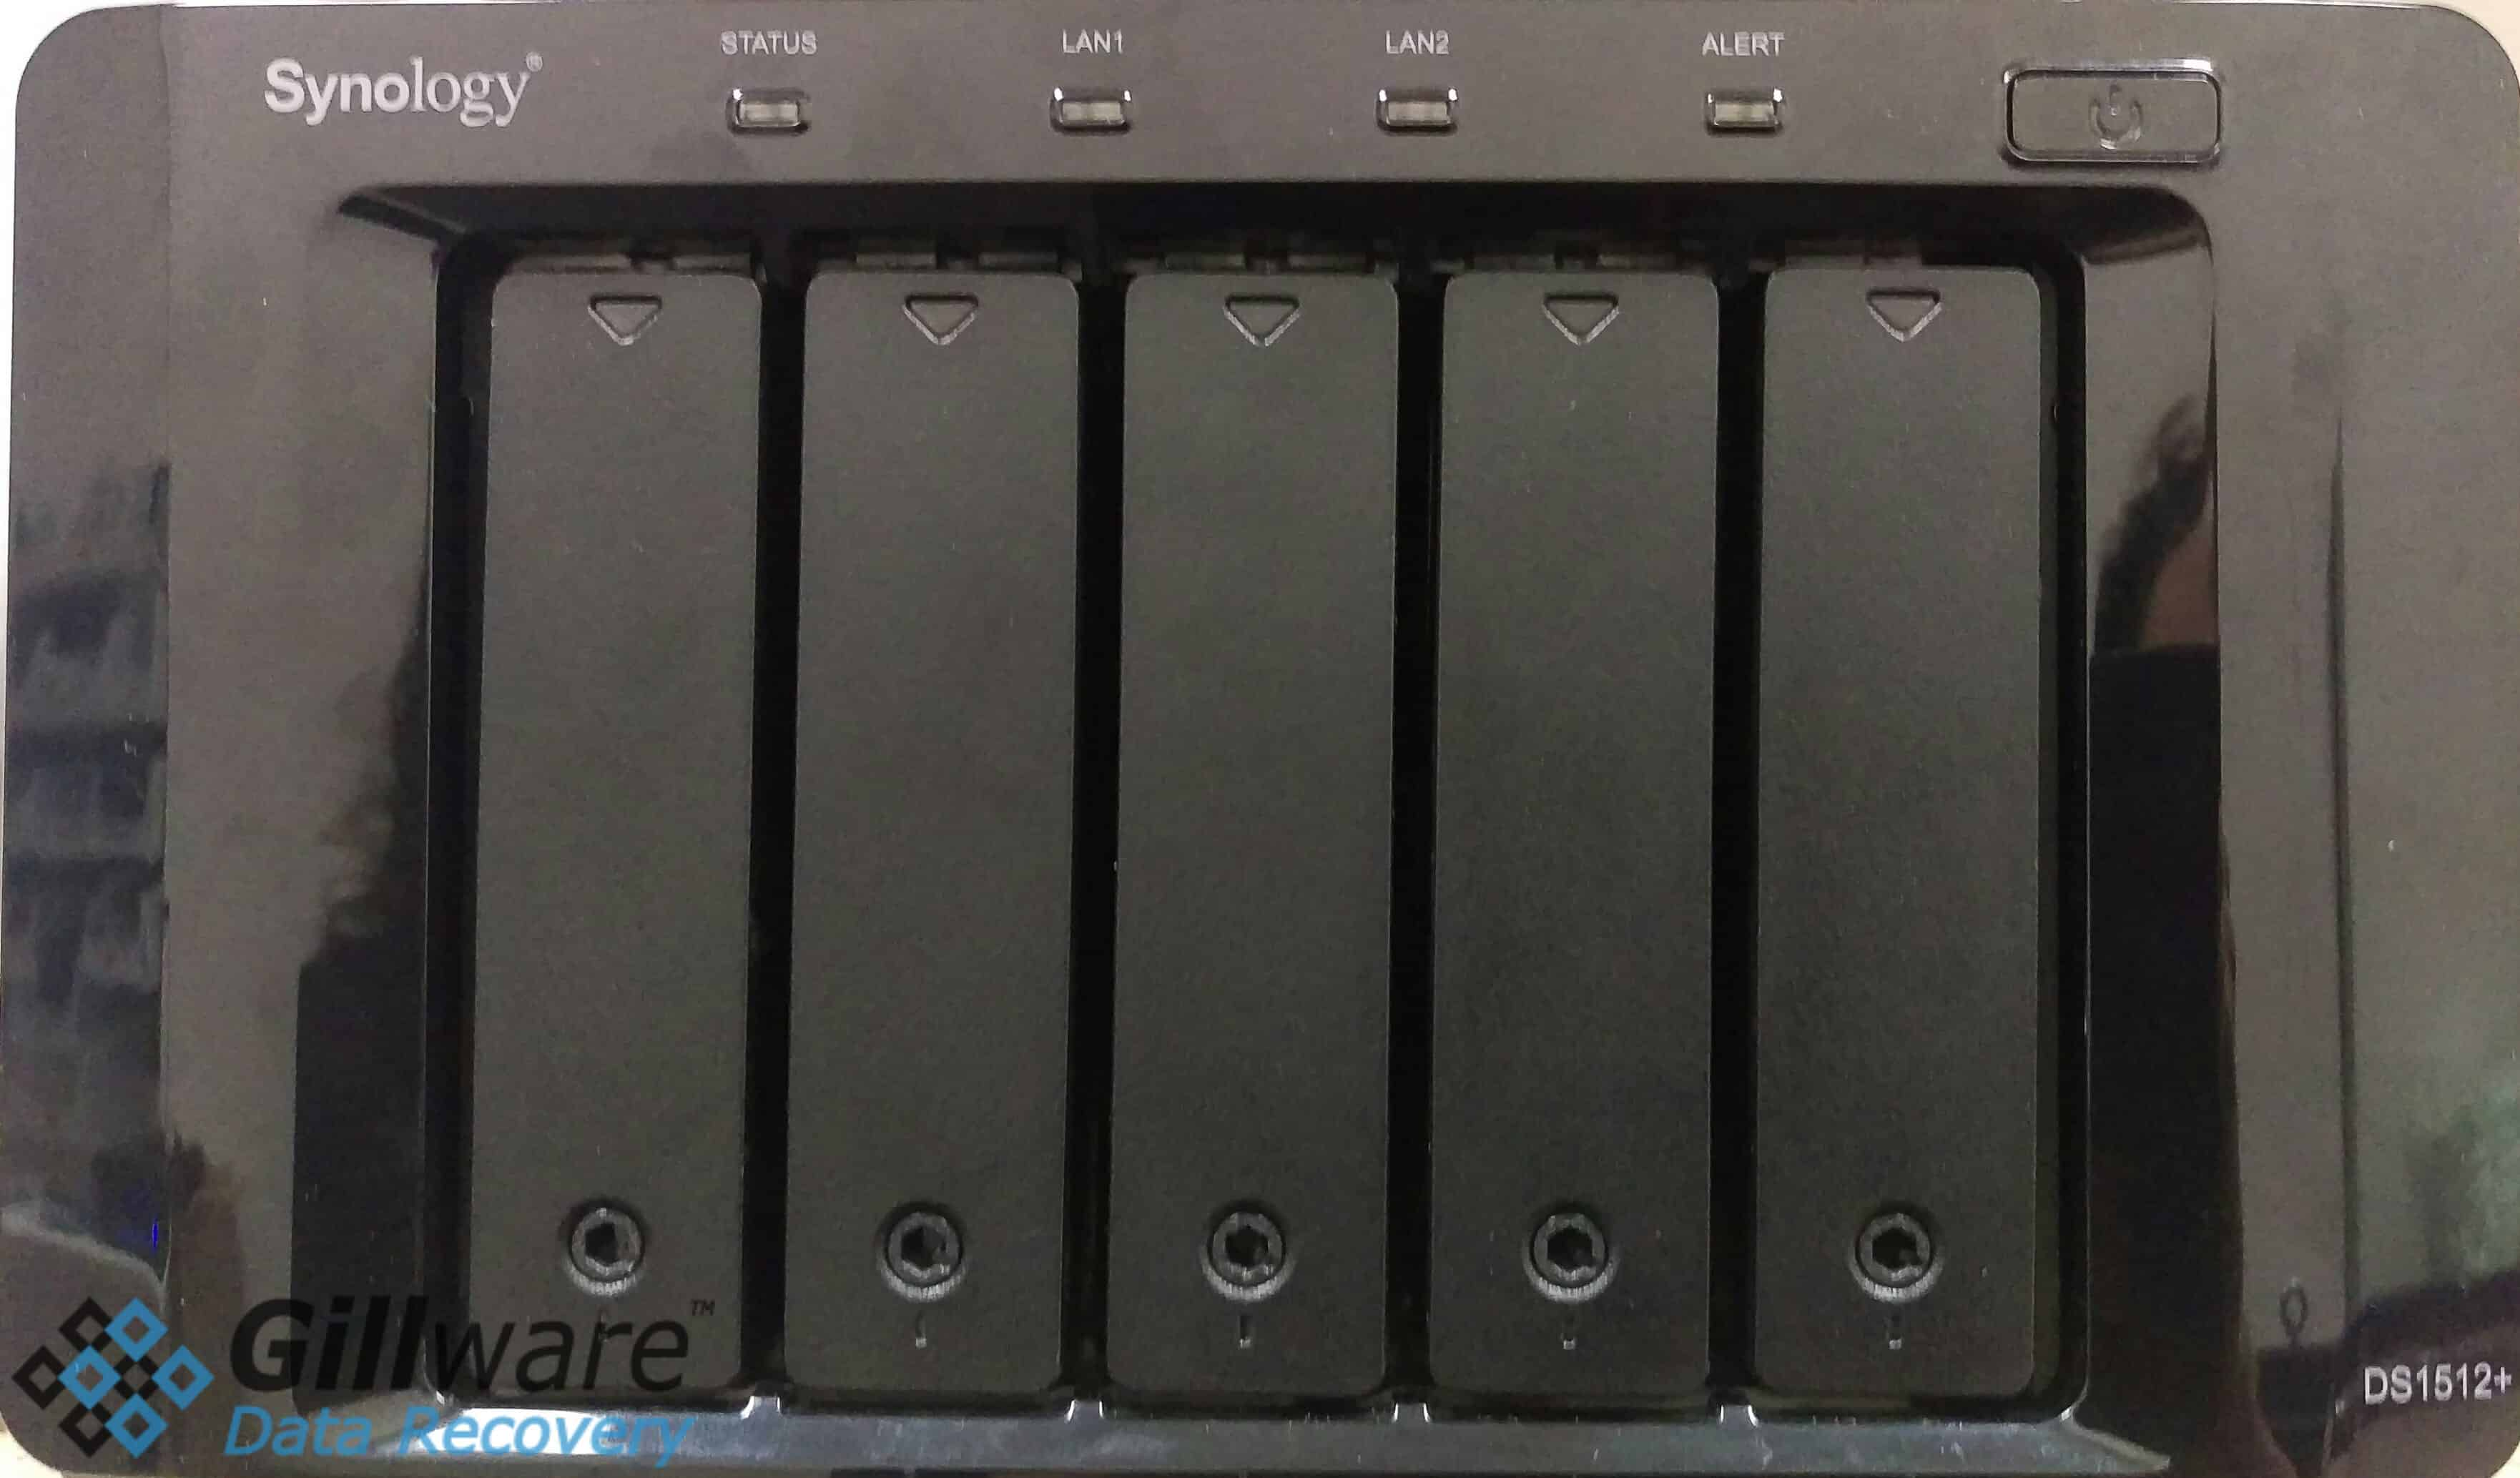 Synology DiskStation DS1512+ Power Surge Data Recovery Case